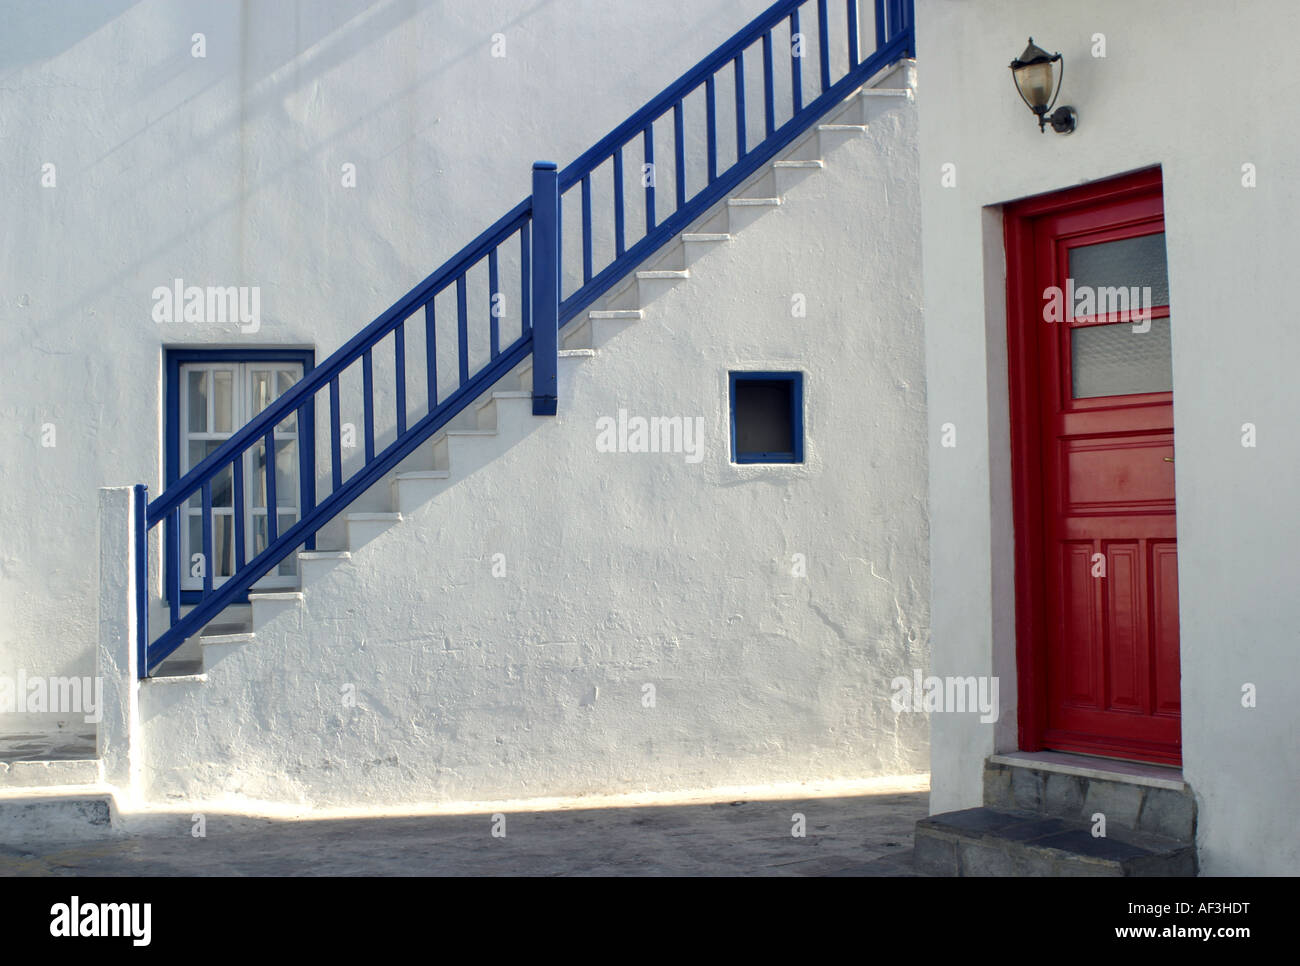 A Whitewashed Building And Stairs Showing Blue Shutters And A Red Door